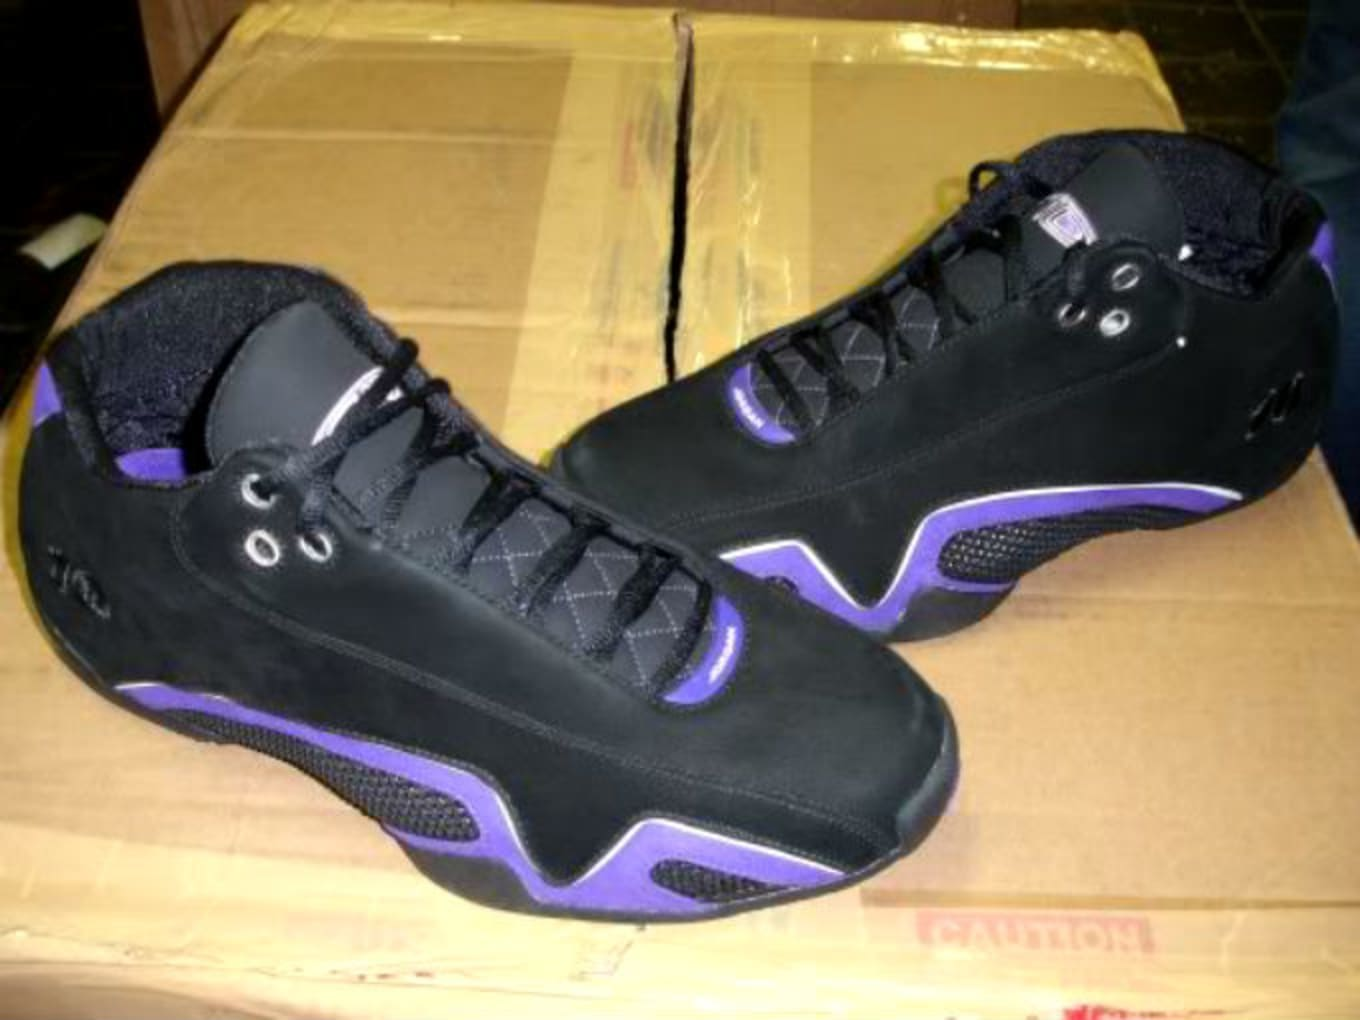 52c2daa06989 Mike Bibby Air Jordan Player Exclusives | Sole Collector